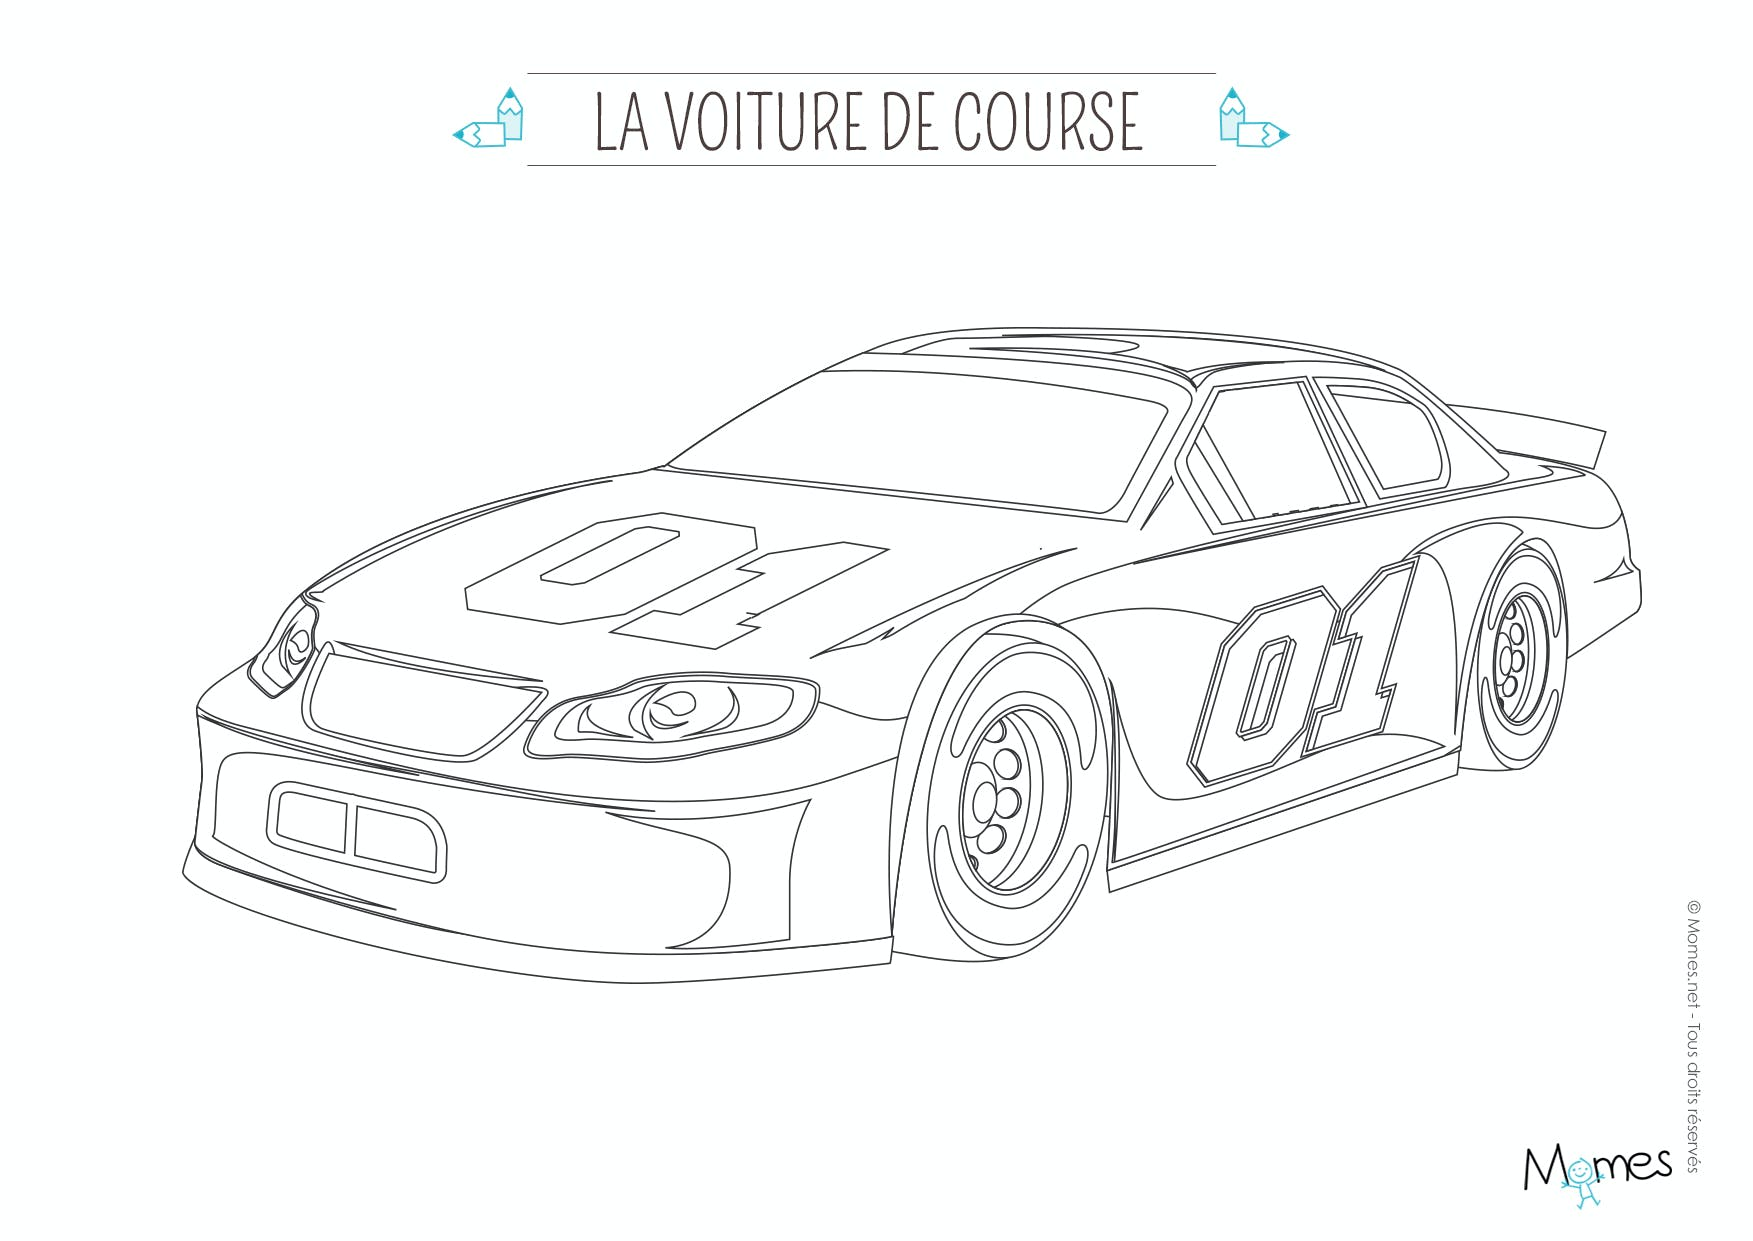 Coloriage la voiture de course - Dessin de voiture simple ...